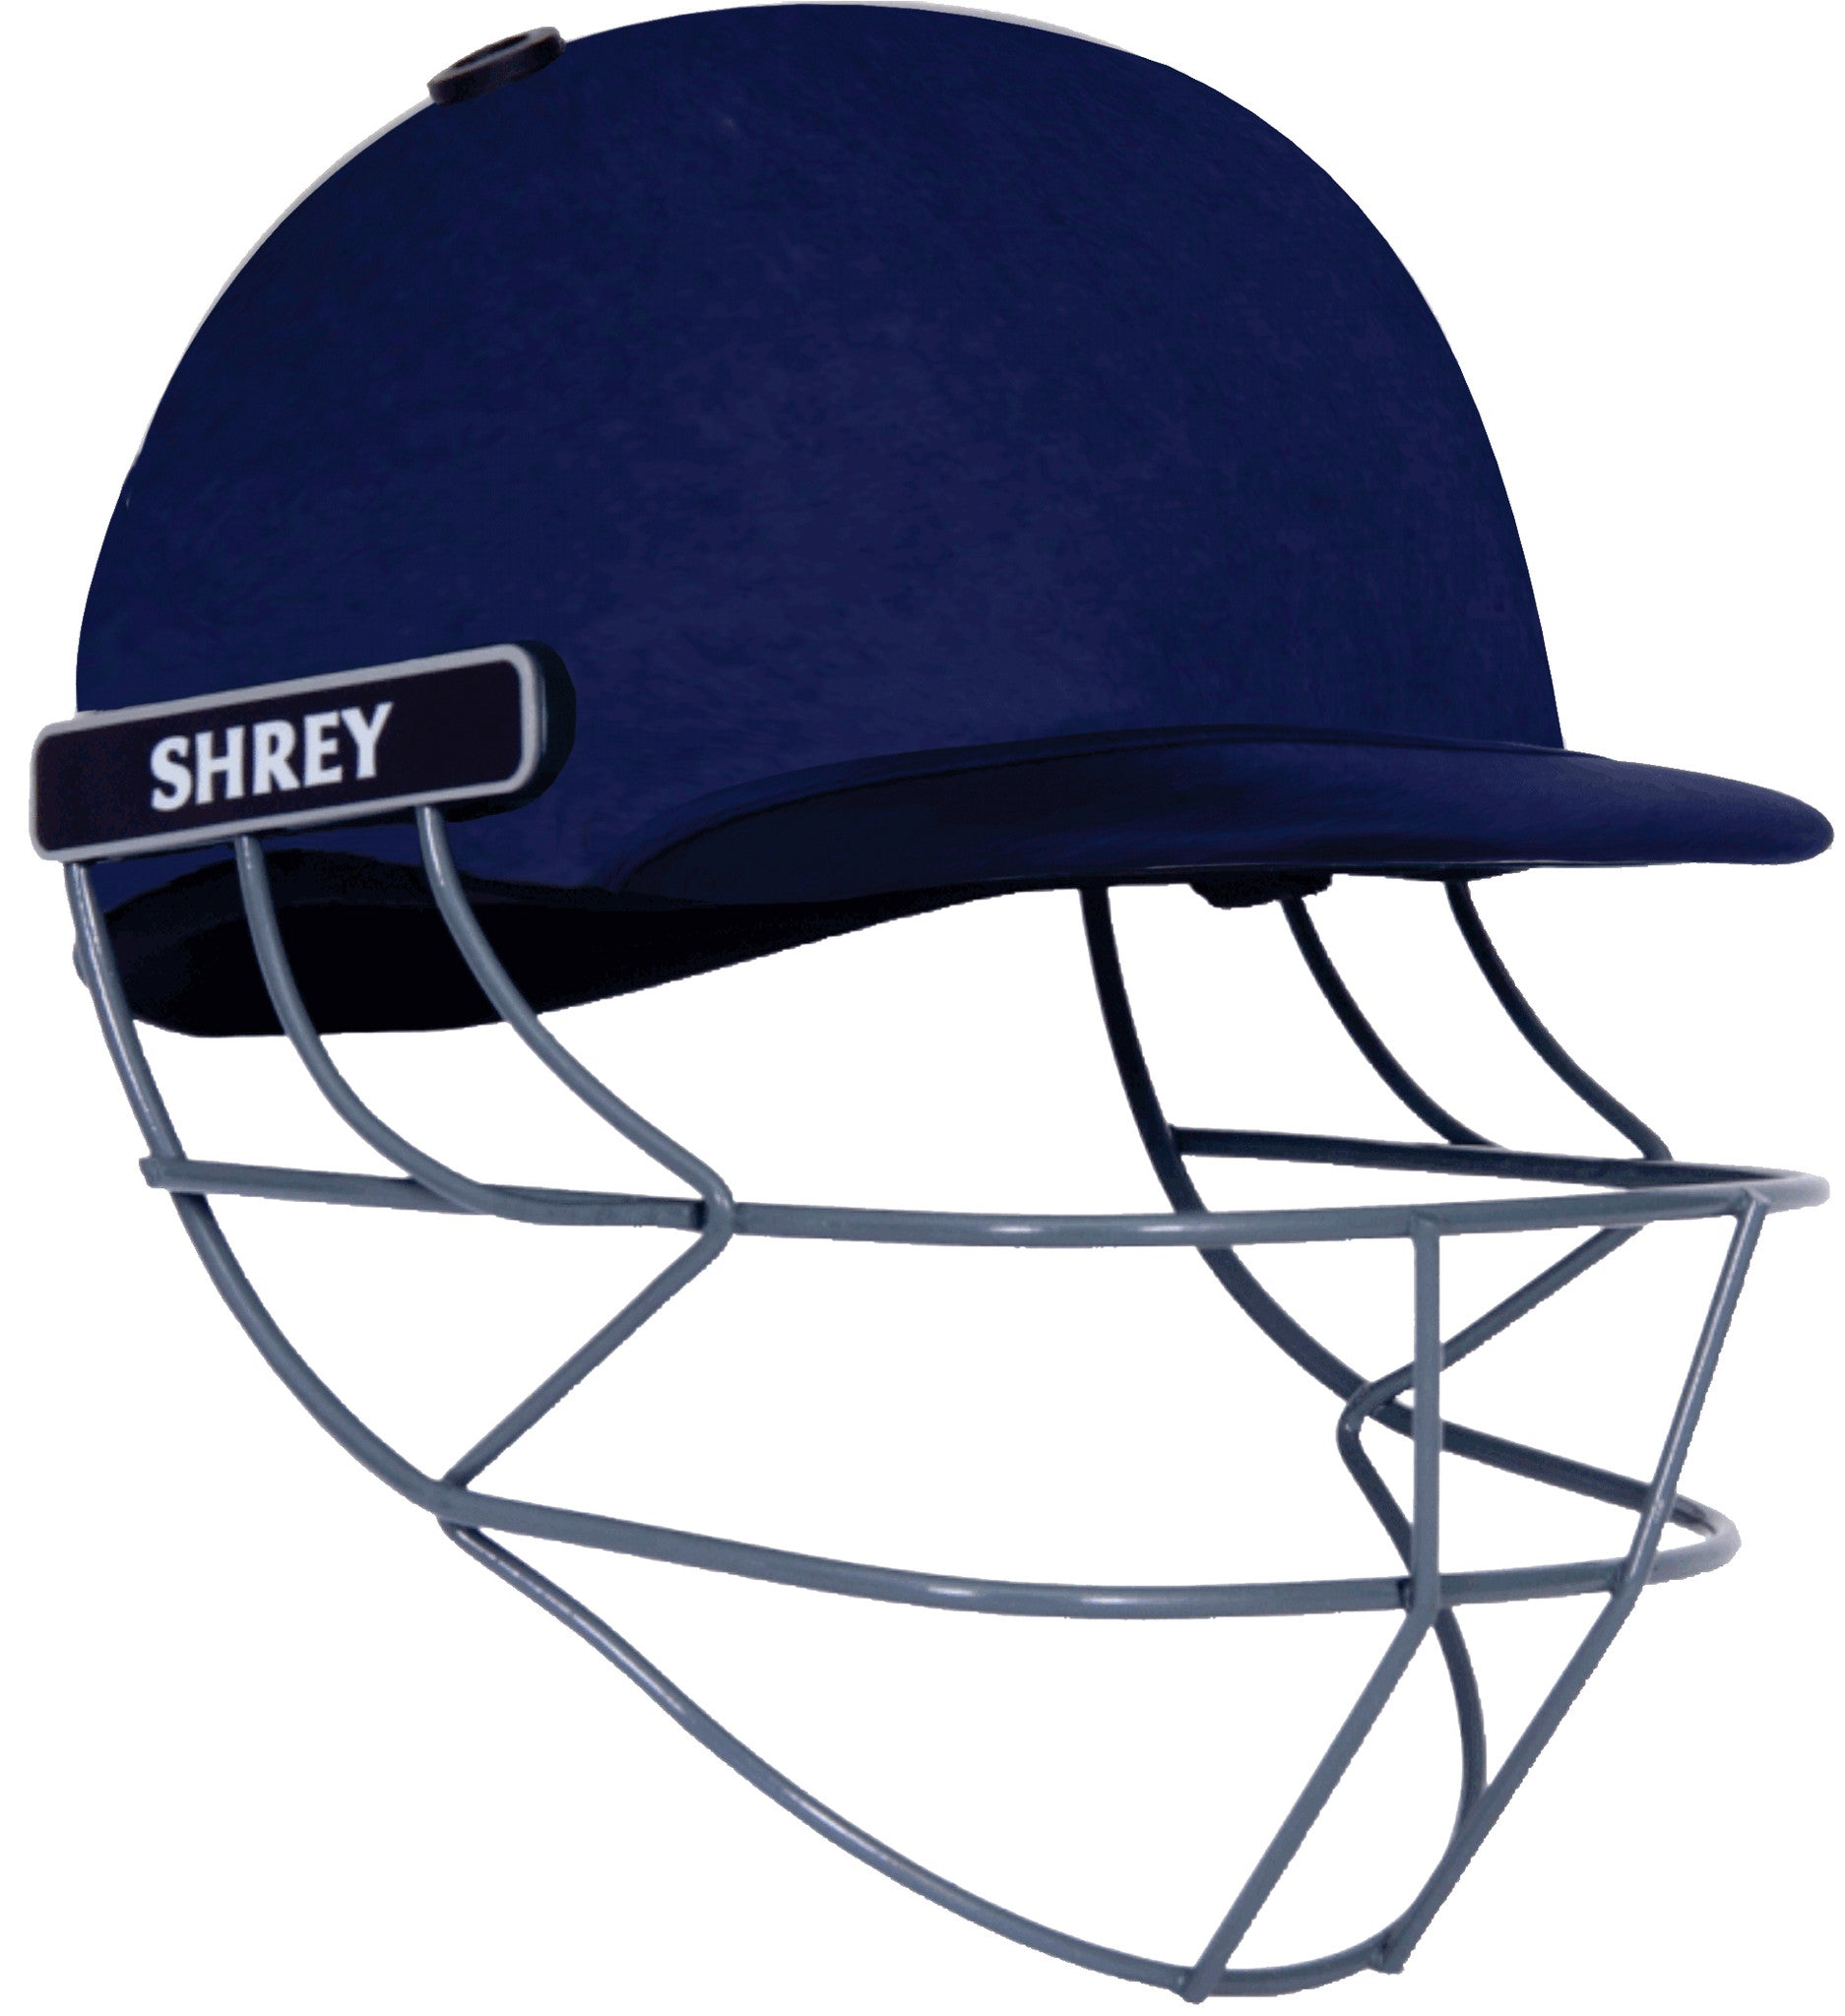 Performance Helmet - Navy